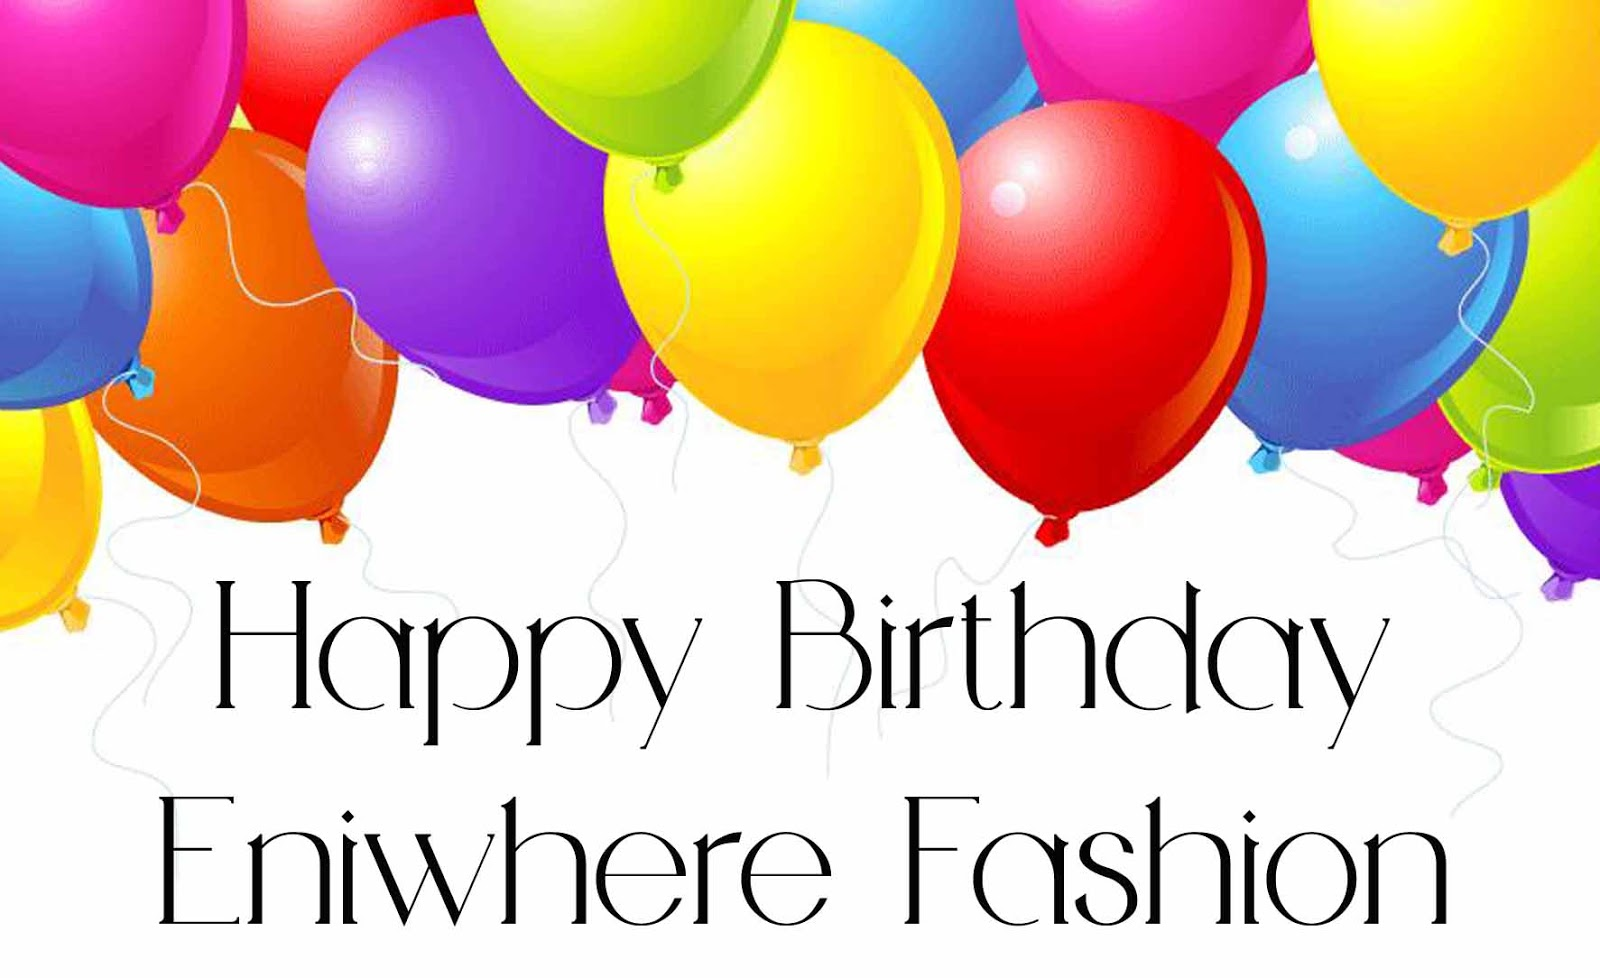 Happy Birthday - Eniwhere Fashion